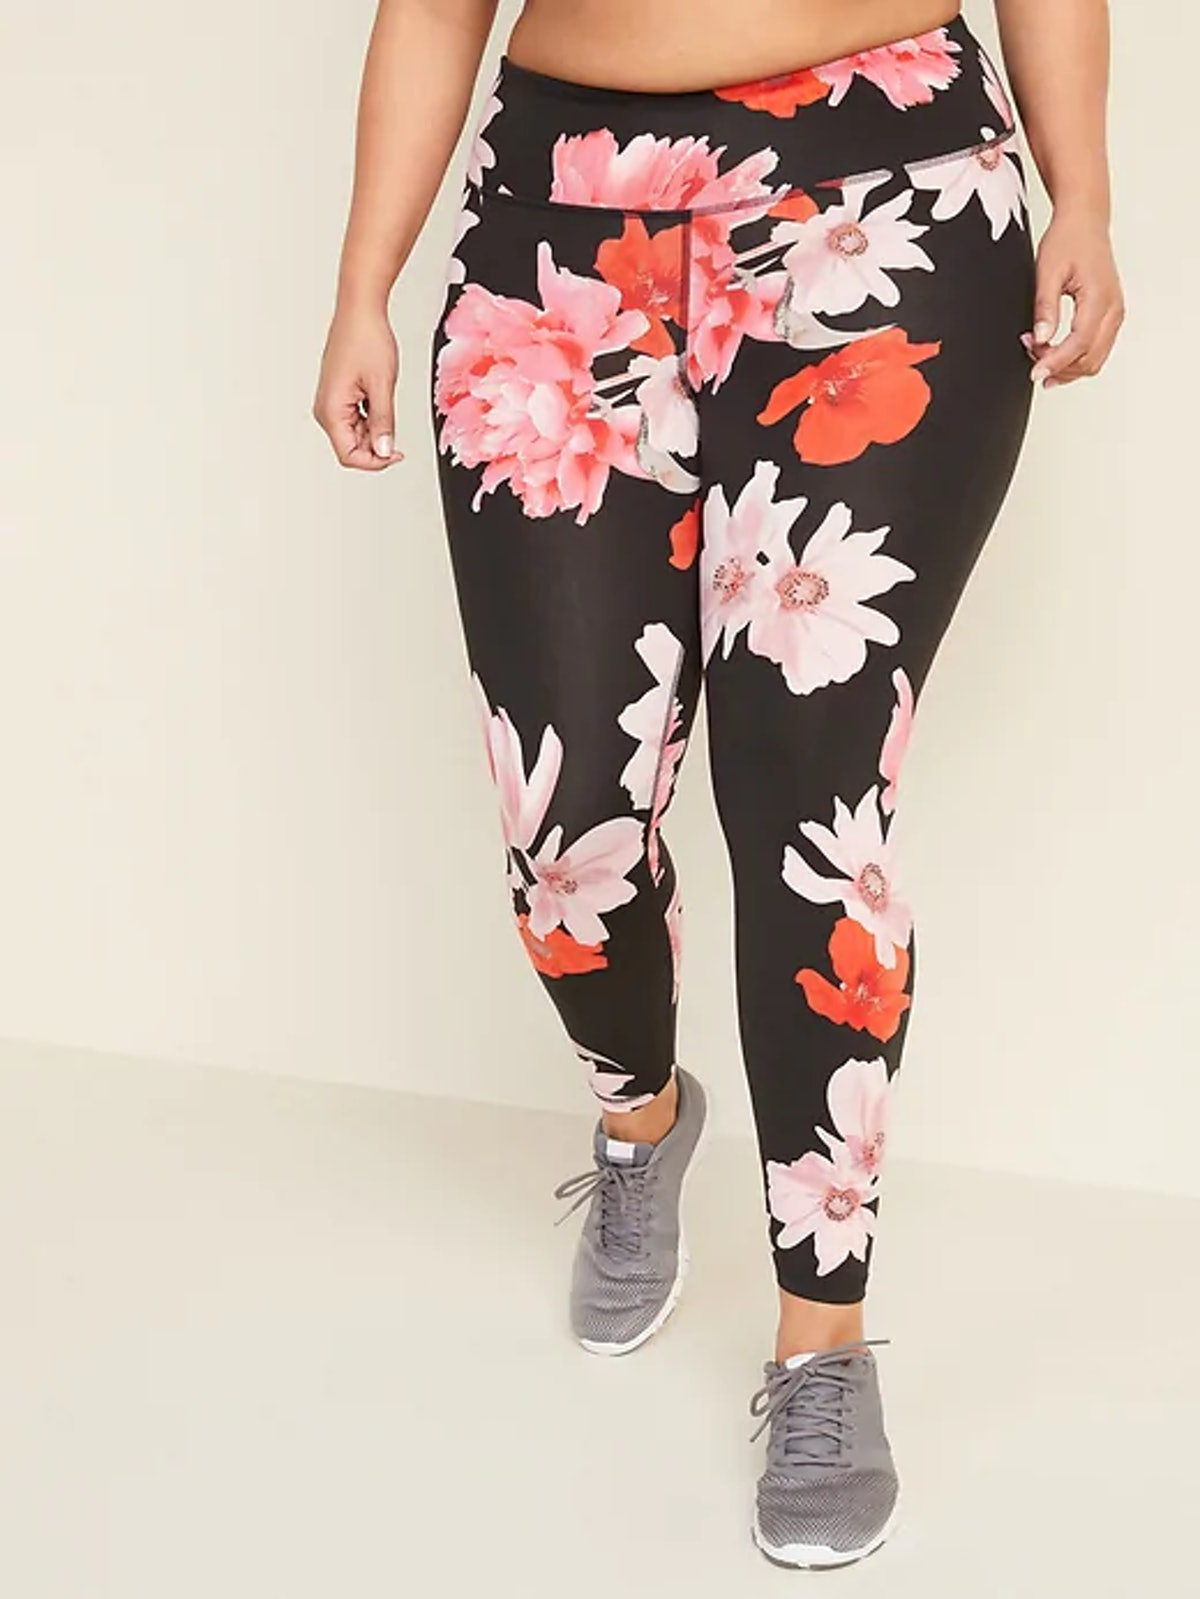 Old Navy High-Waisted Elevate 7/8-Length Plus-Size Leggings